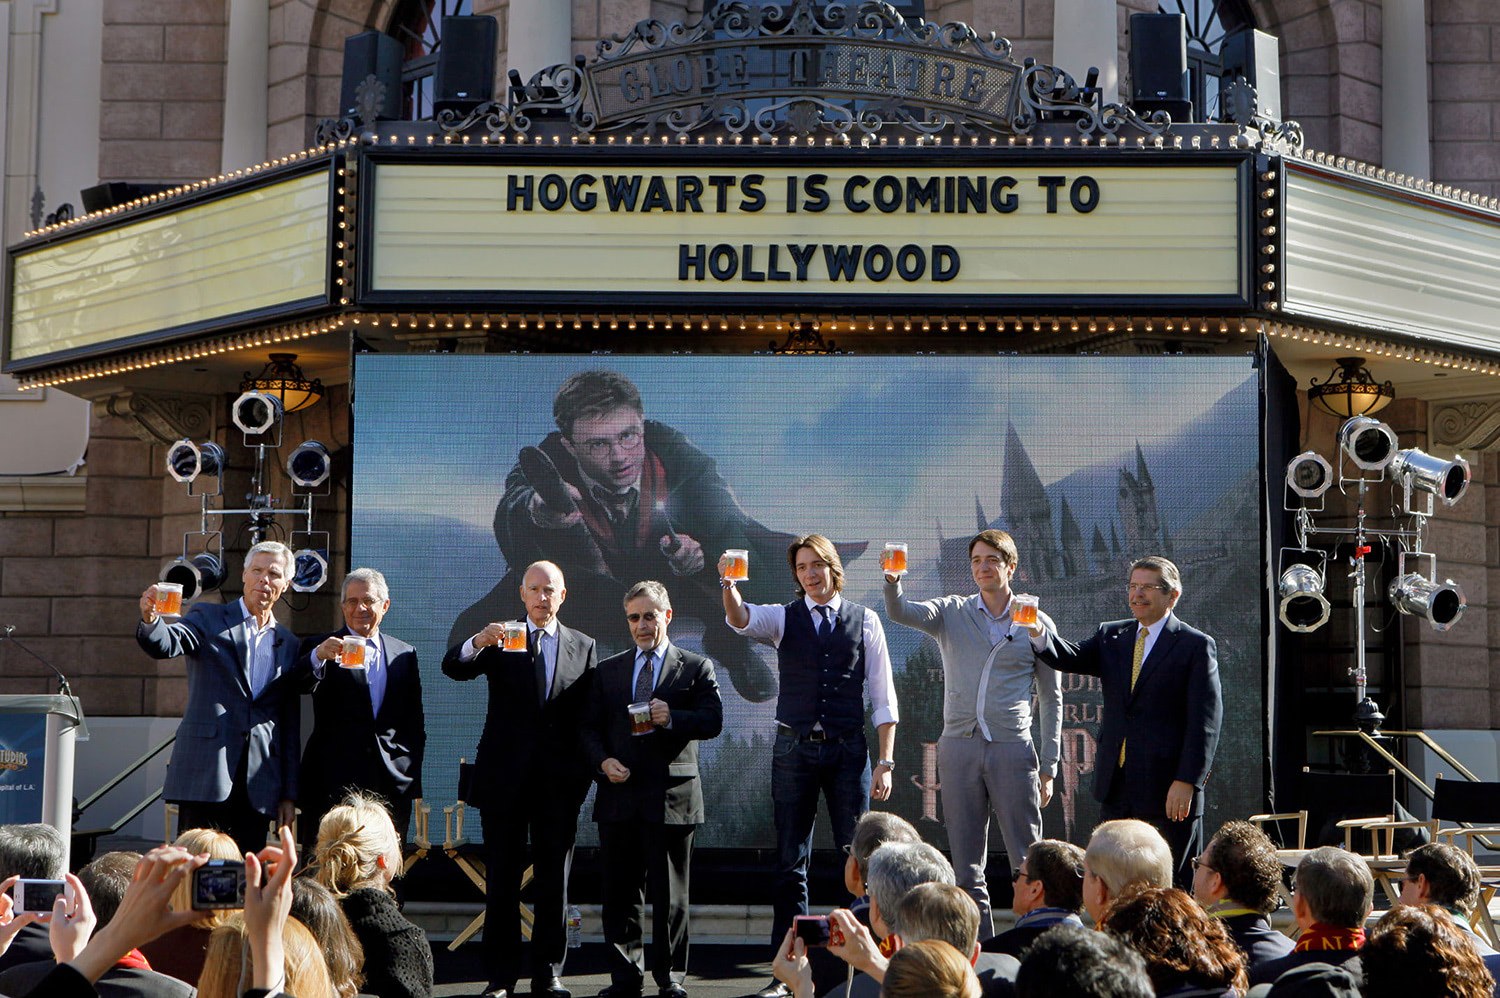 'Wizarding World of Harry Potter' Hollywood announcement